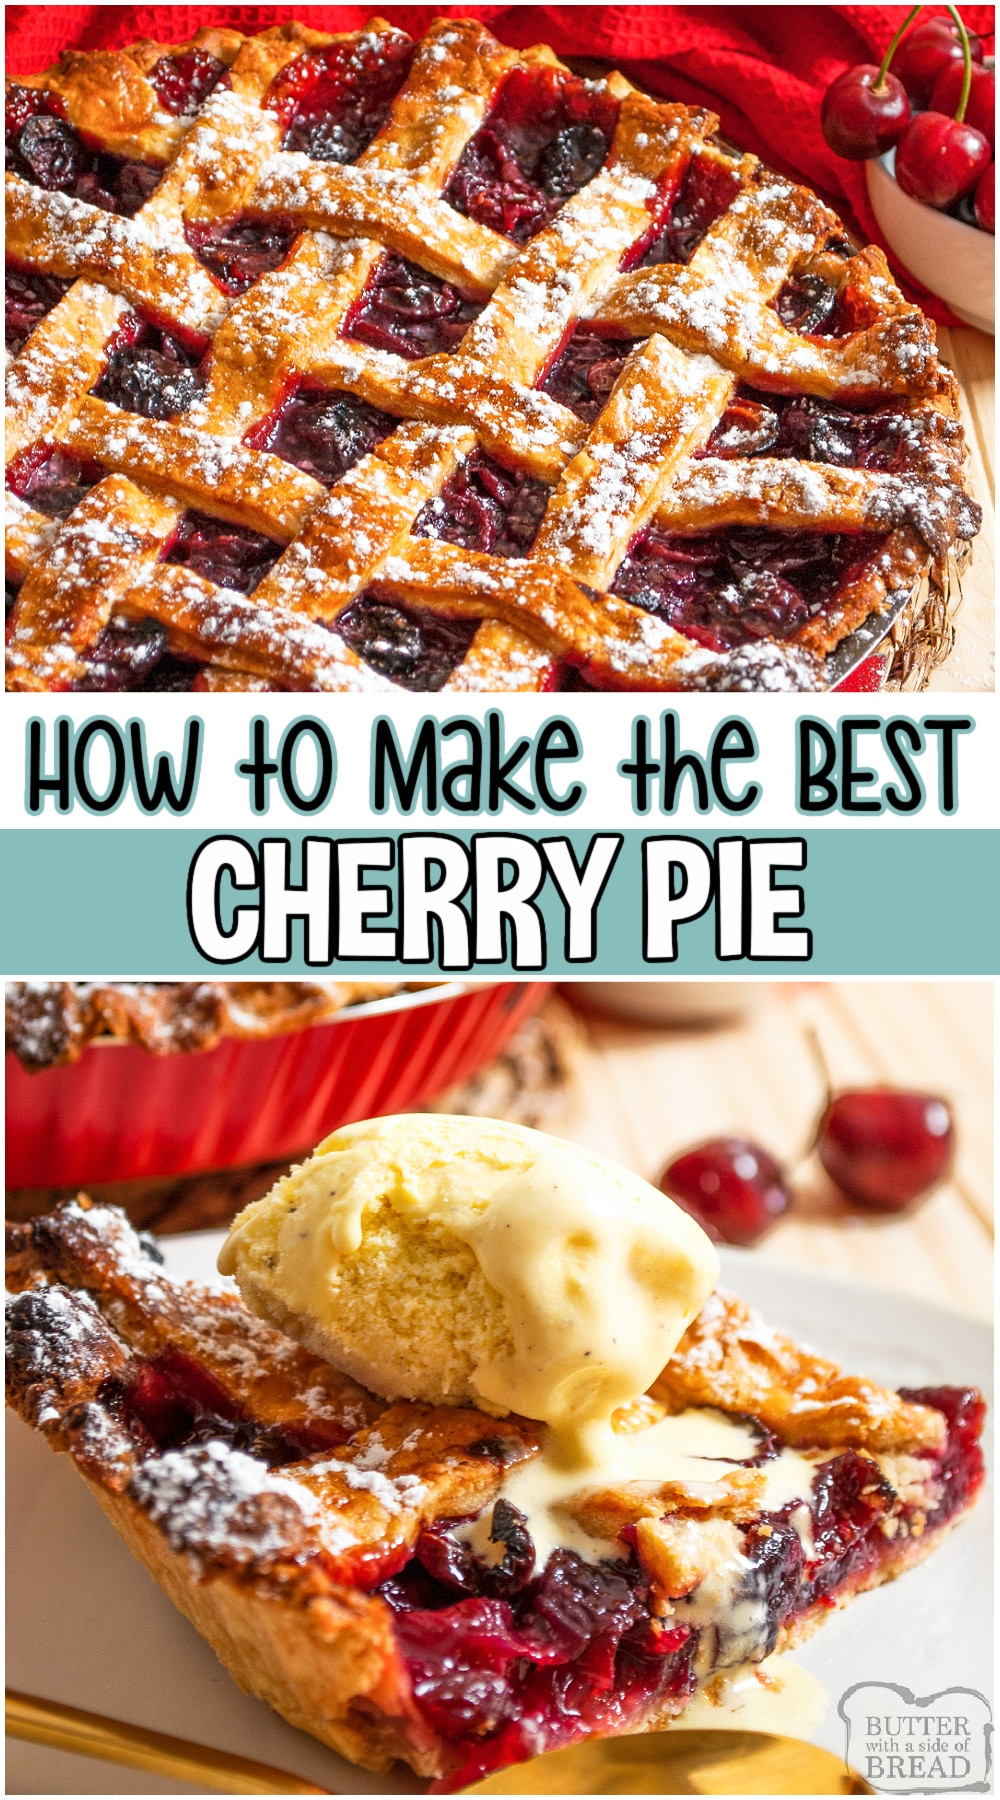 Classic cherry pie made from scratch, with the flakiest homemade crust and a delicious fresh cherry filling. Our buttery pie crust is the best and you can't beat a homemade sweet cherry pie. Serve with vanilla ice cream for the ultimate treat! #pie #cherries #cherrypie #baking #dessert #homemade #easyrecipe from BUTTER WITH A SIDE OF BREAD